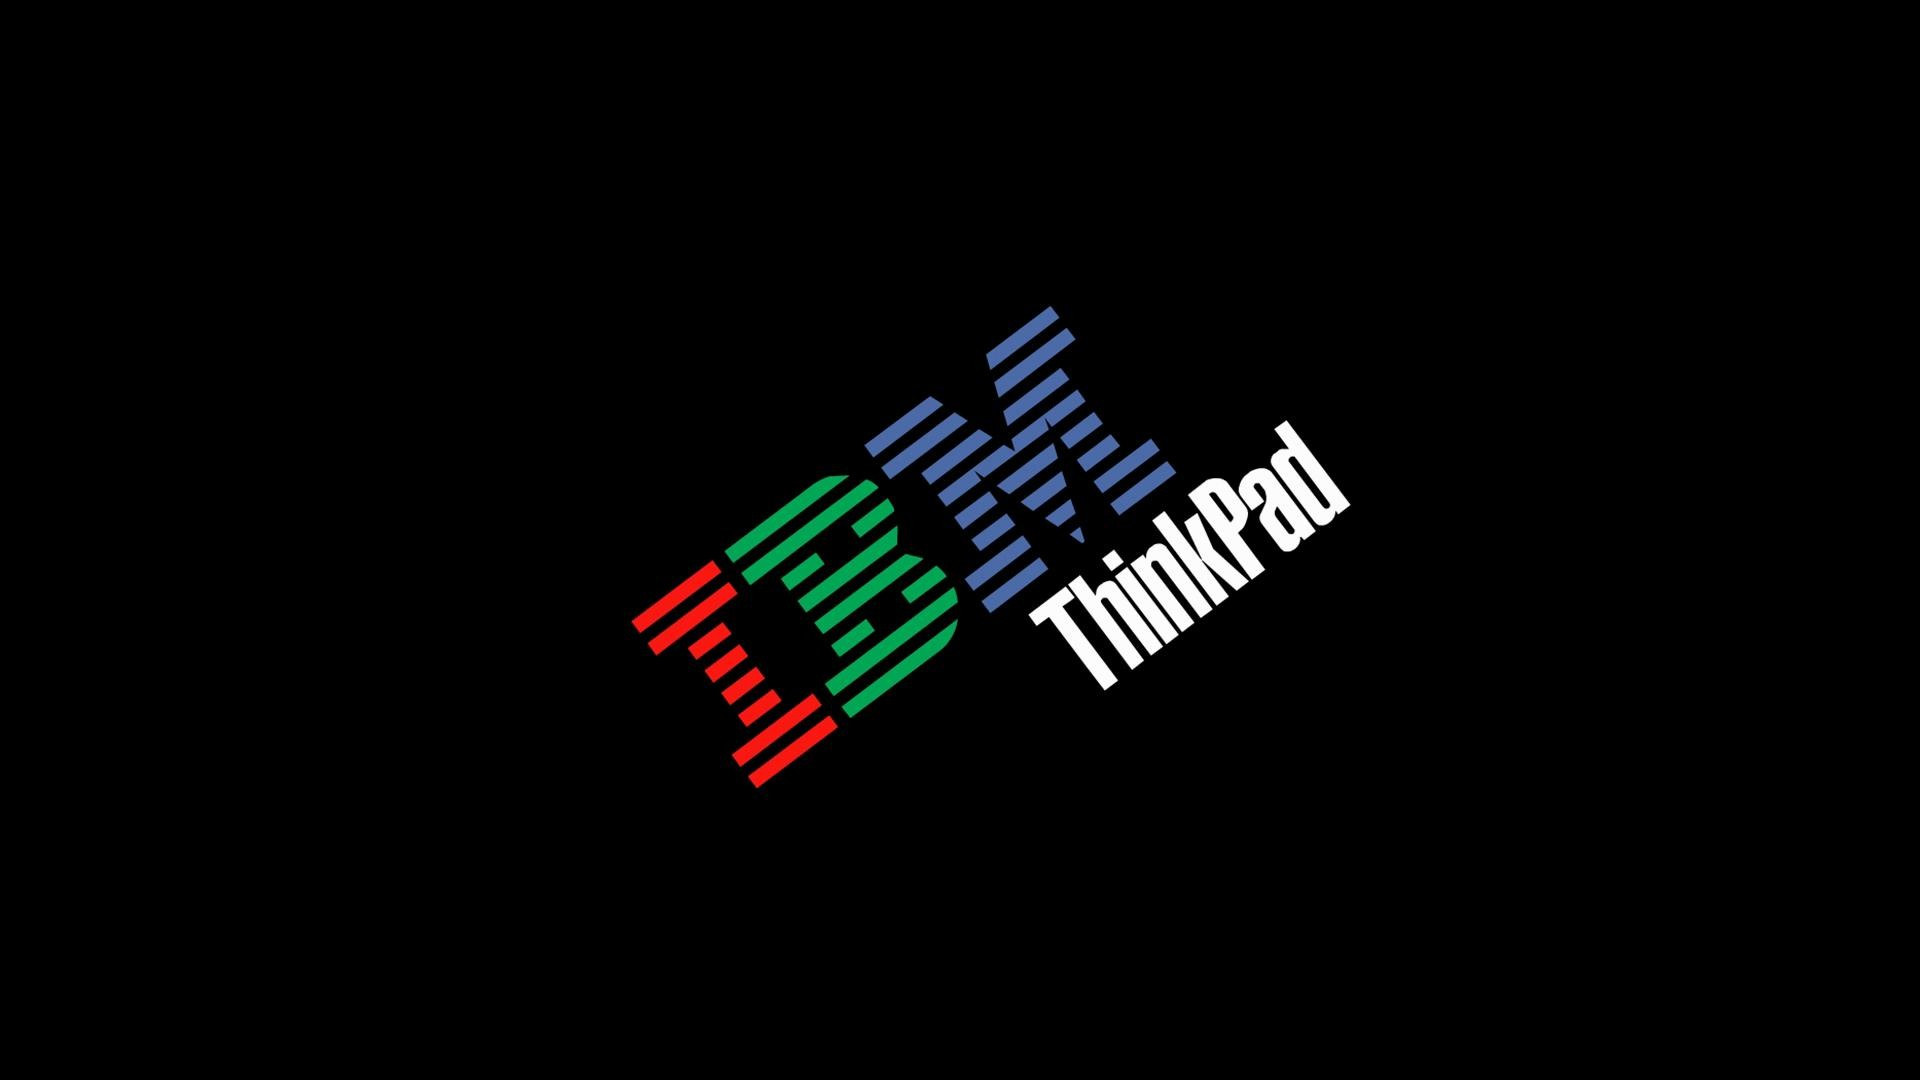 Lenovo Wallpaper 1080p: IBM Wallpaper Thinkpad (64+ Images